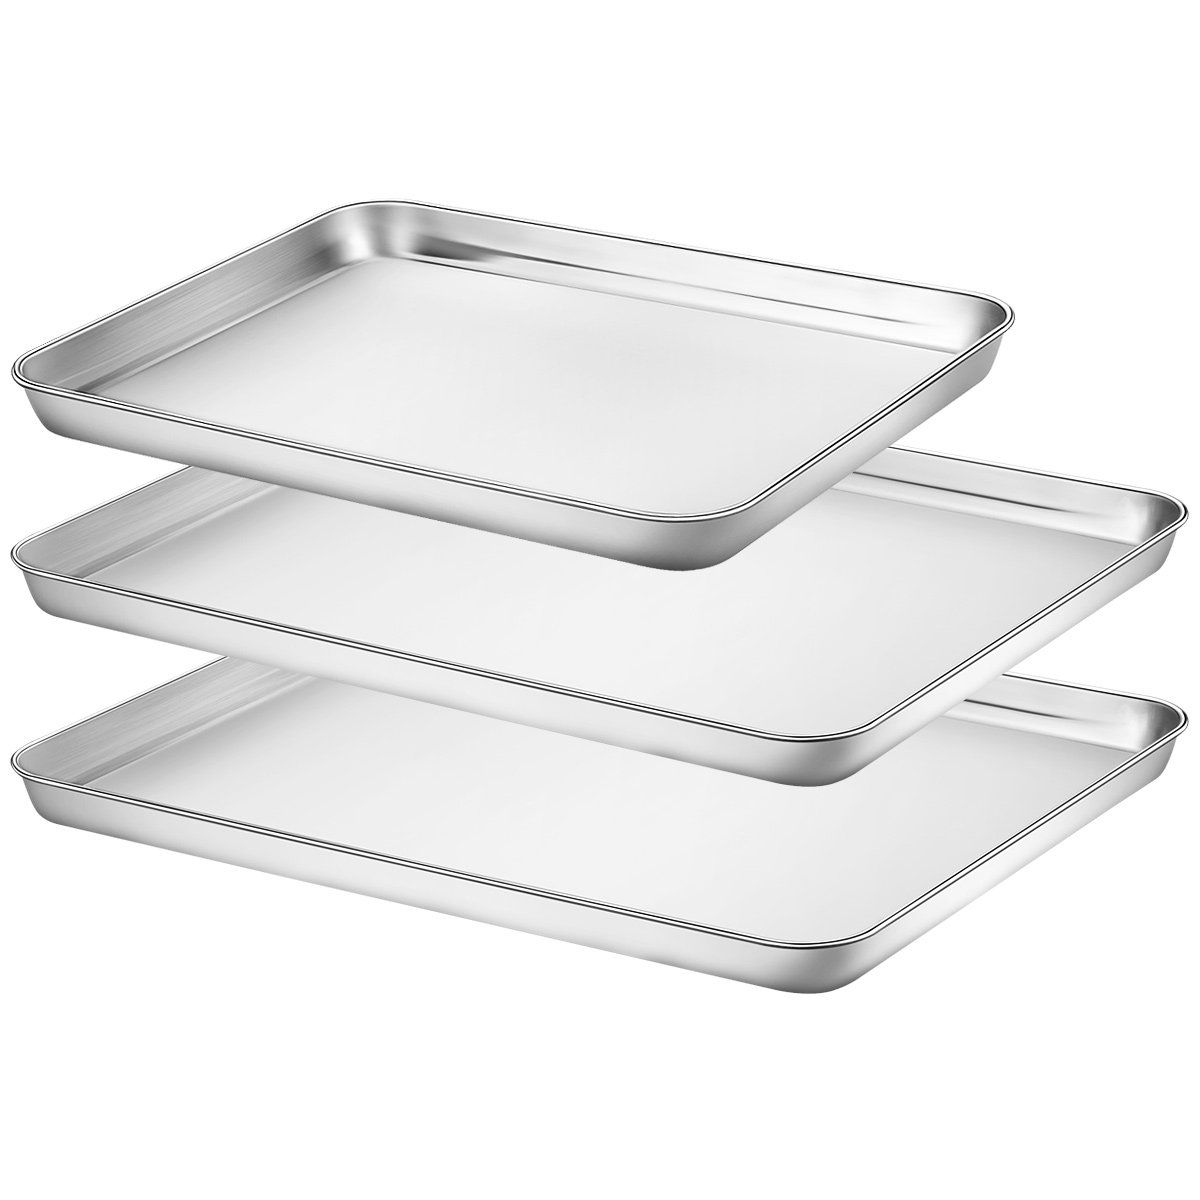 Baking Sheets Set Of 3 Hkj Chef Baking Pans 3 Pieces And